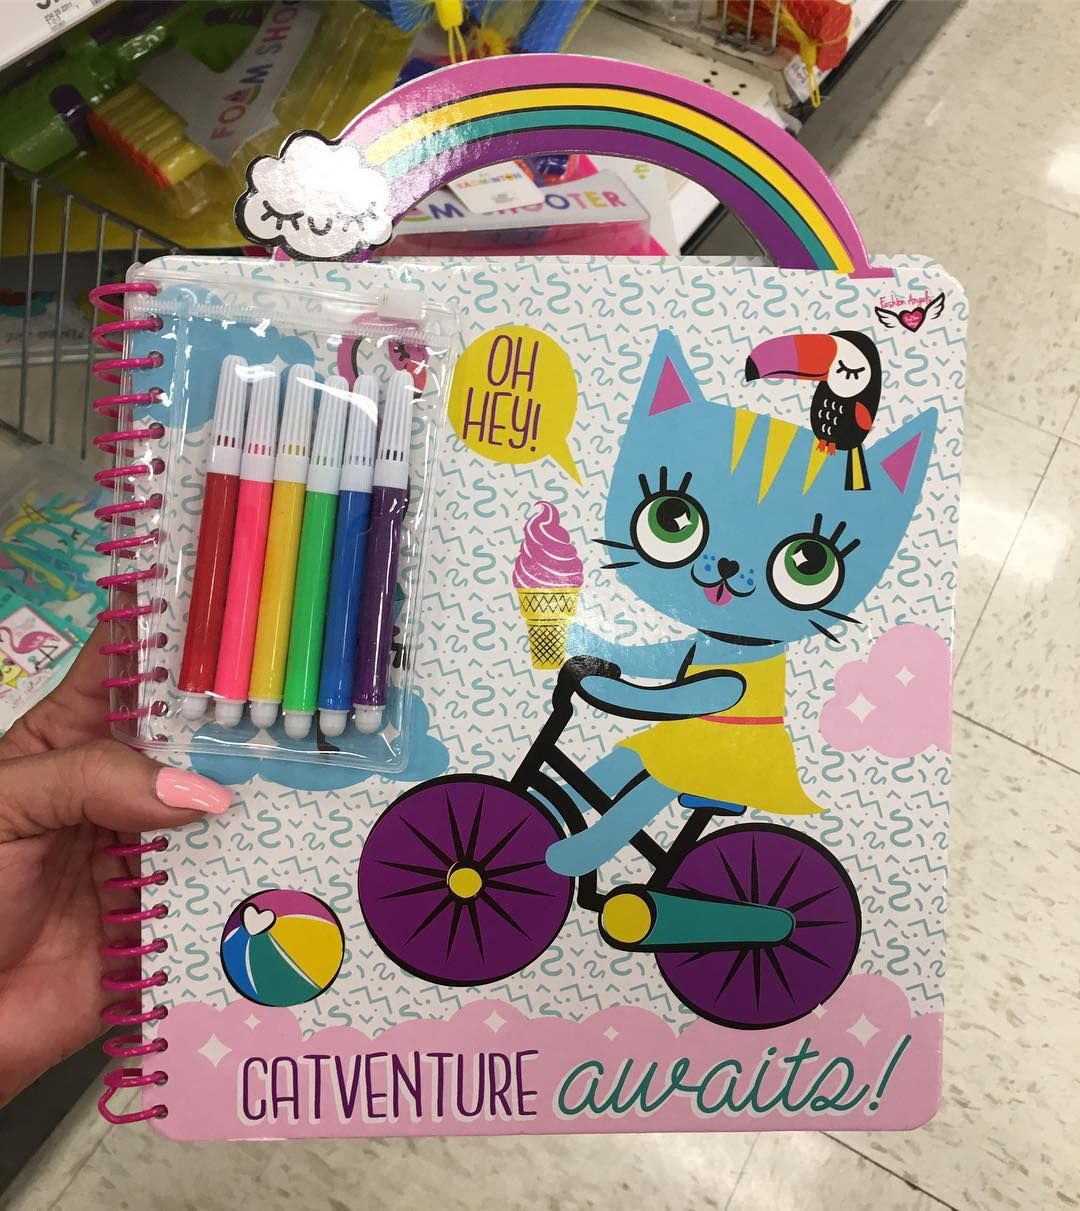 Target Pursuit On Instagram Coloring Book With Markers 3 At The Target Dollar Spot Coloringbook T Frozen Coloring Pages Coloring Books Target Dollar Spot